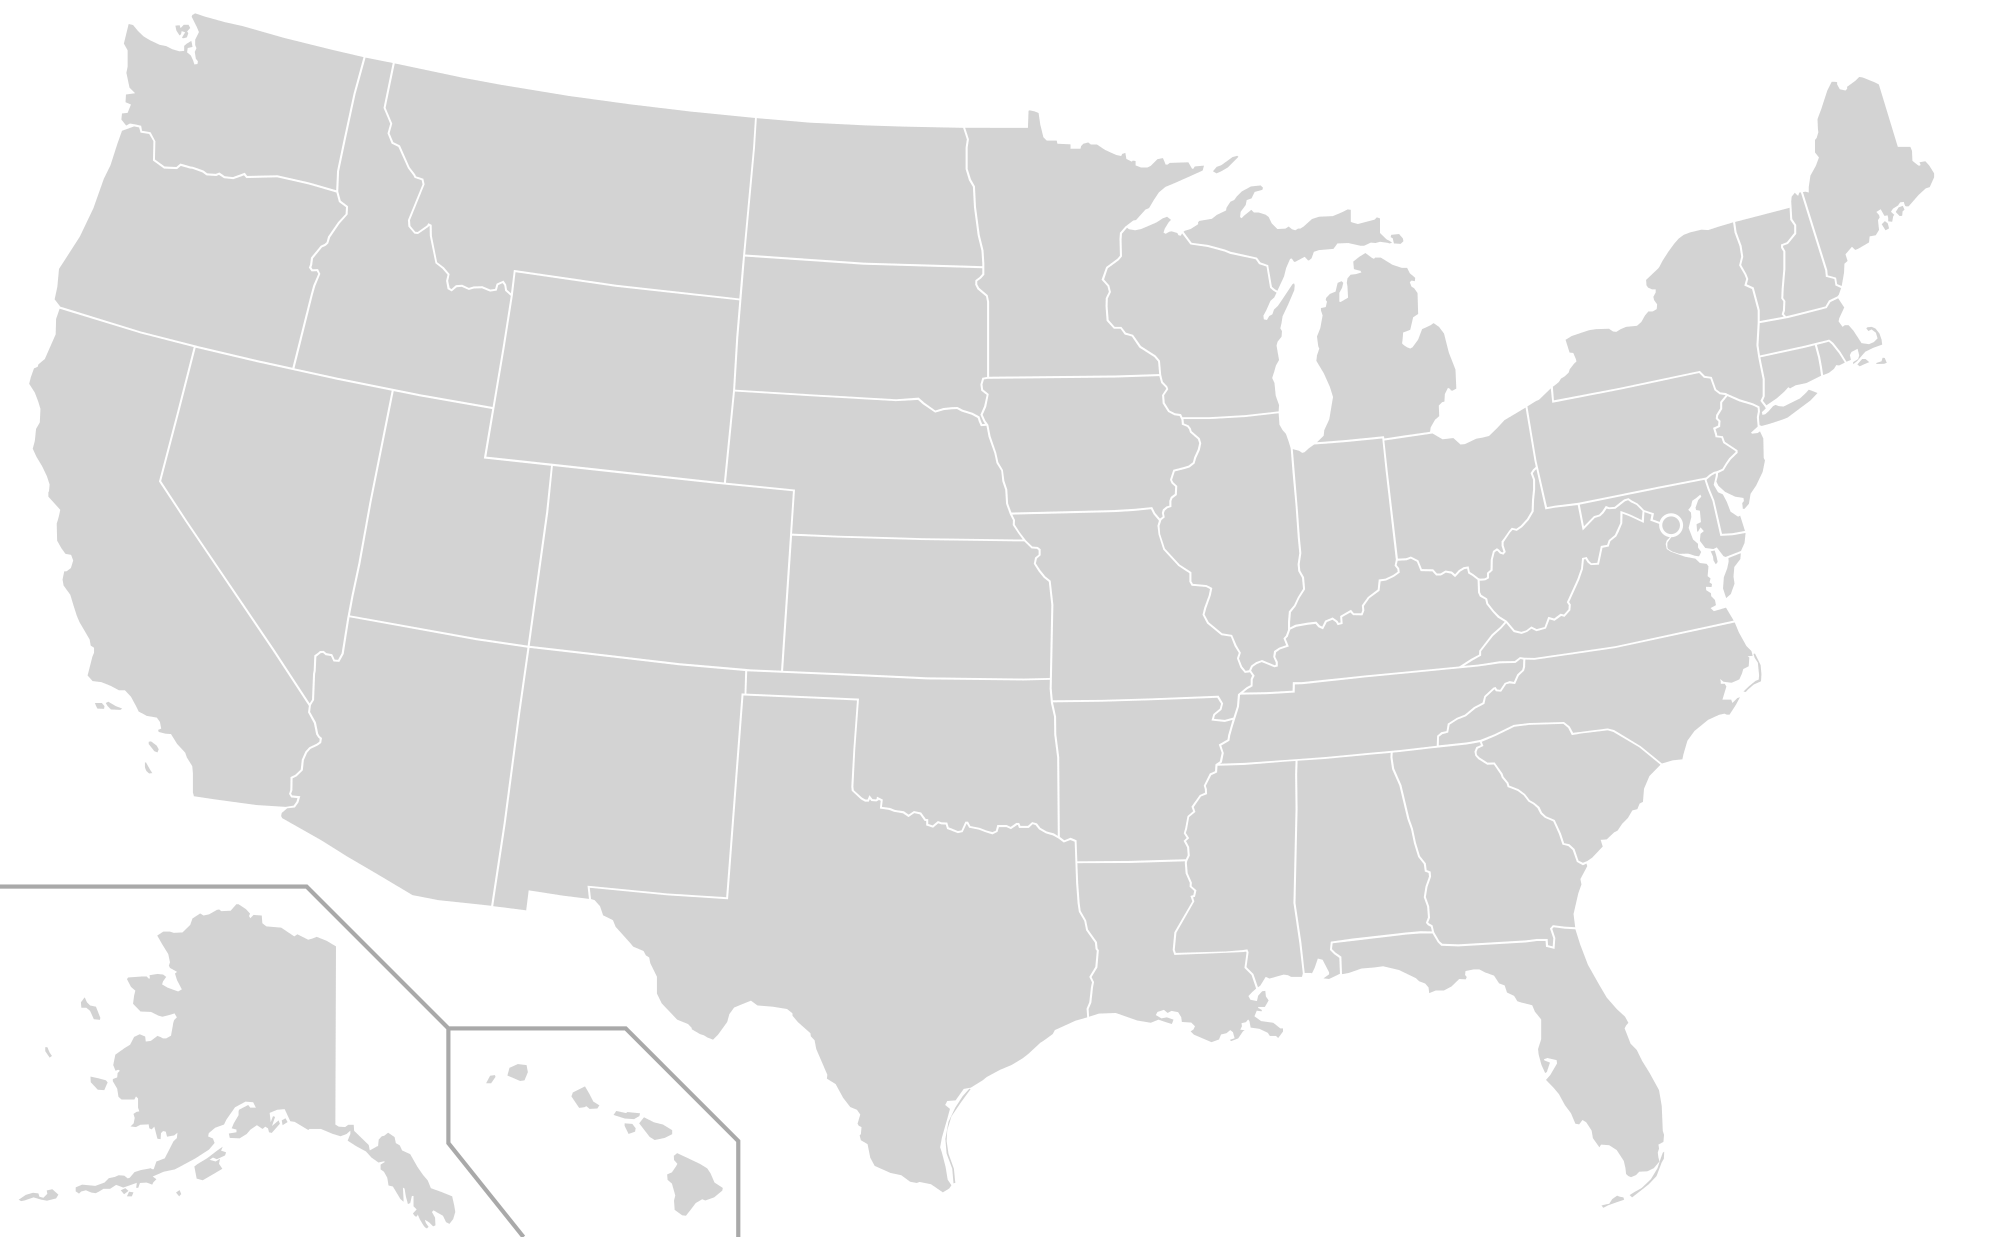 Us map clipart black vector free stock File:Blank US Map (states only).svg - Wikimedia Commons vector free stock